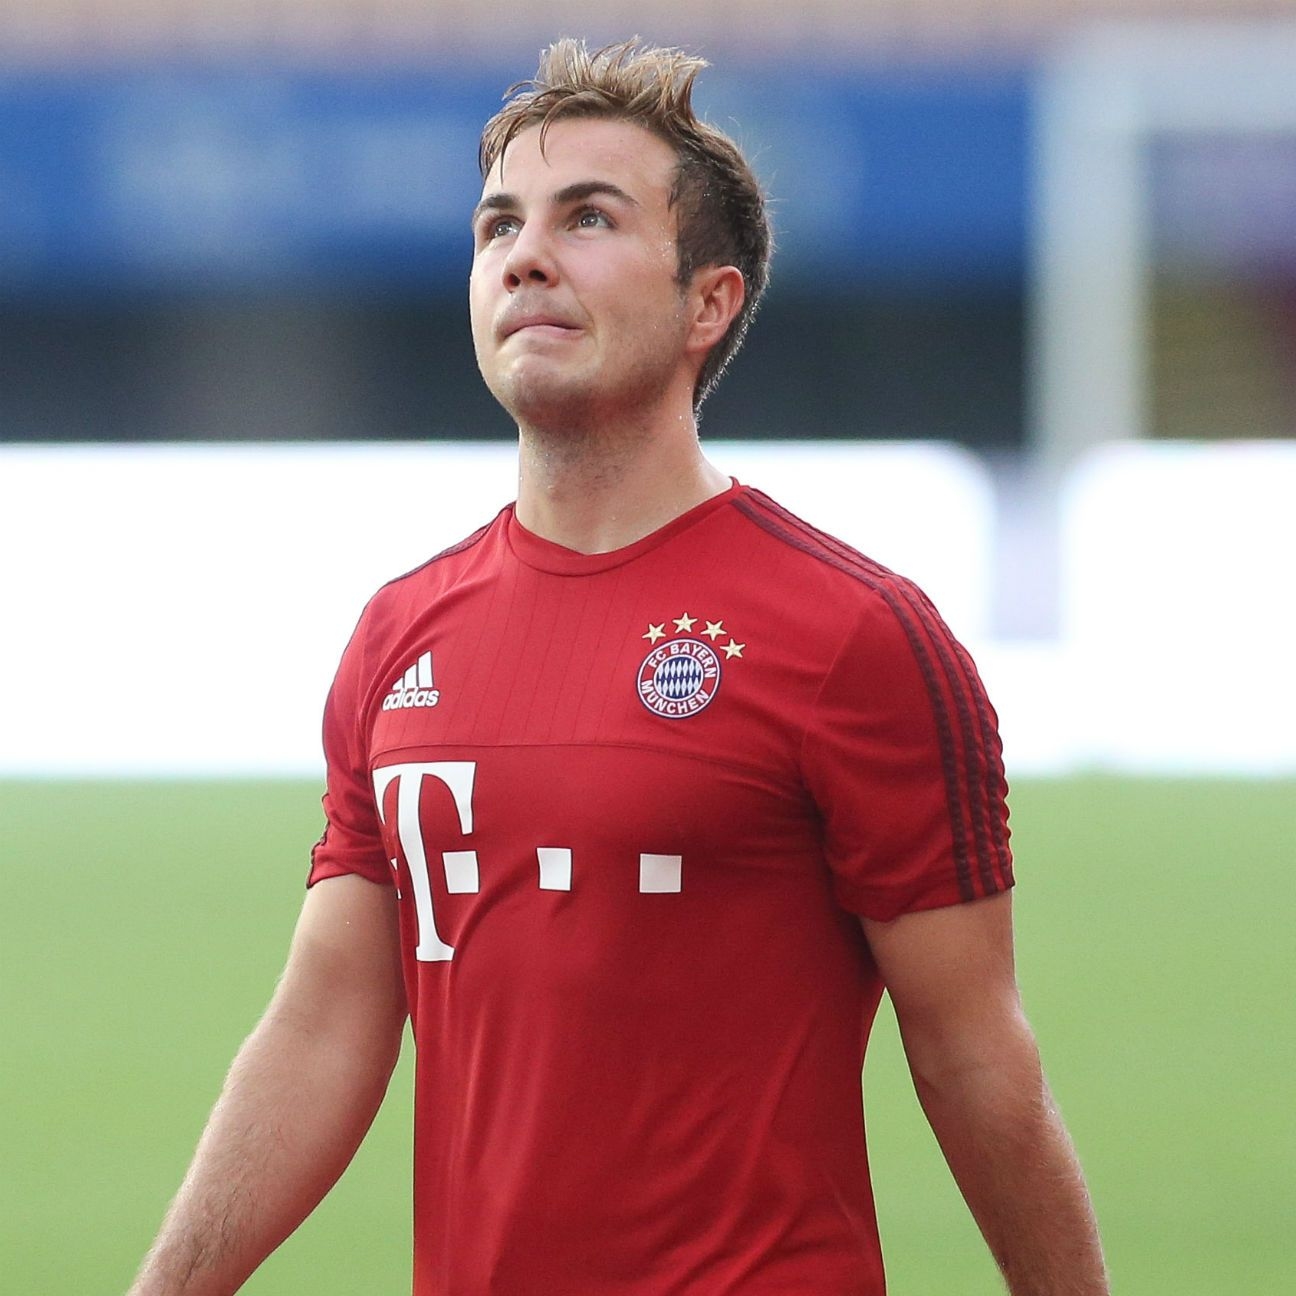 While Mario Gotze has struggled since joining Bayern from Borussia Dortmund two years ago, the World Cup final hero is likely to remain in Munich for 2015-16.